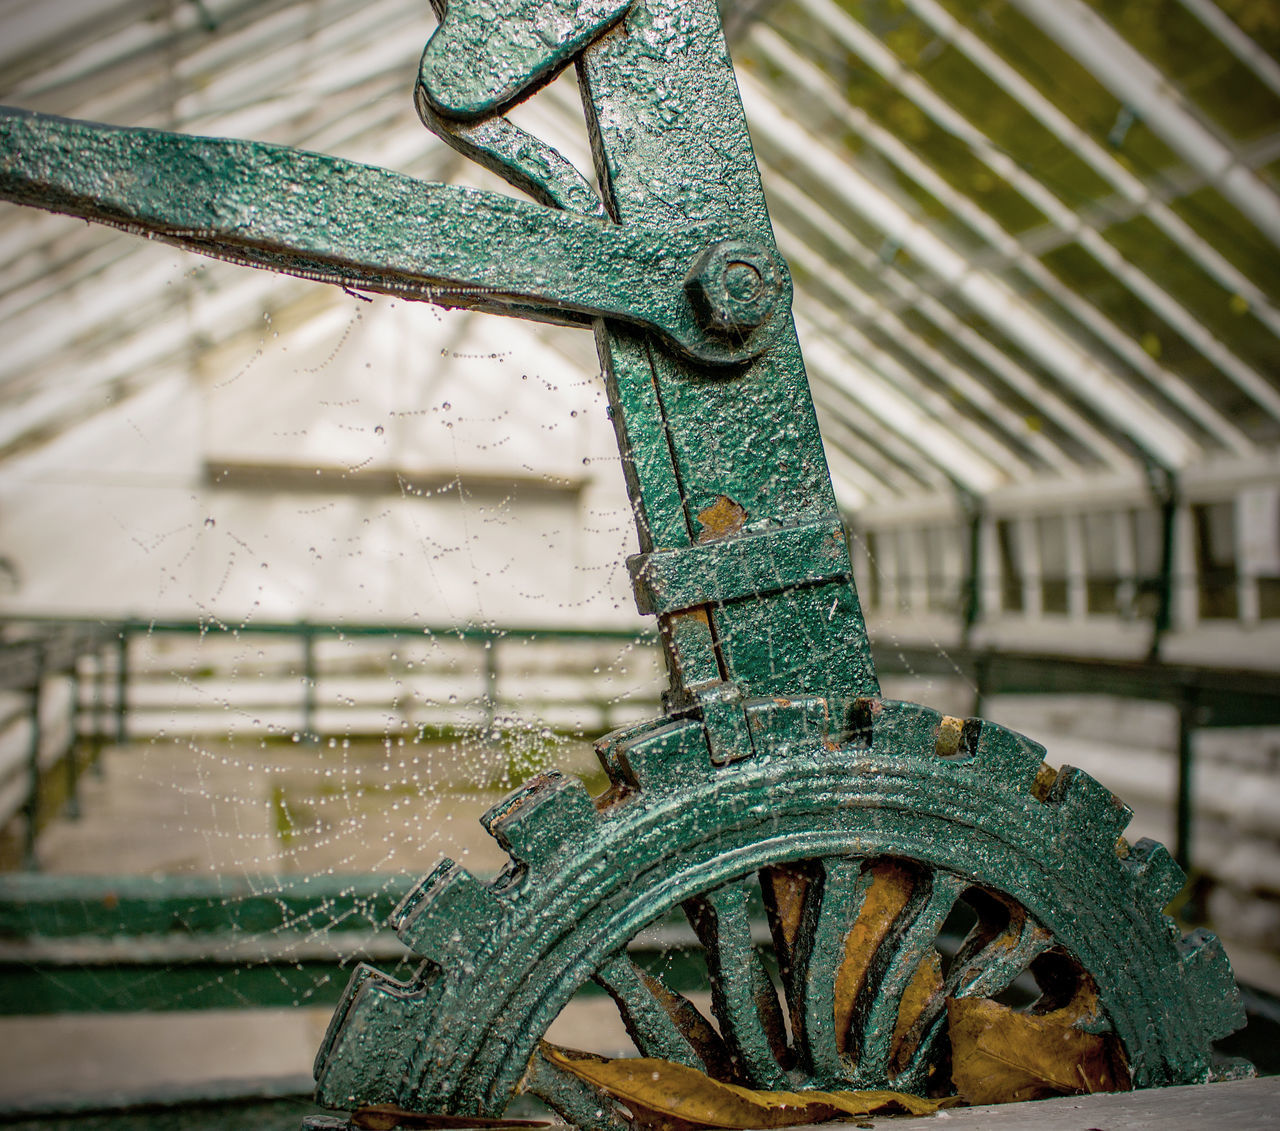 Close up shot of an abandoned Victorian greenhouse and a wynch with leaves Abandoned & Derelict Abandoned Buildings Close-up Day Focus On Foreground Green Color Greenhouse Machinery No People Victorian